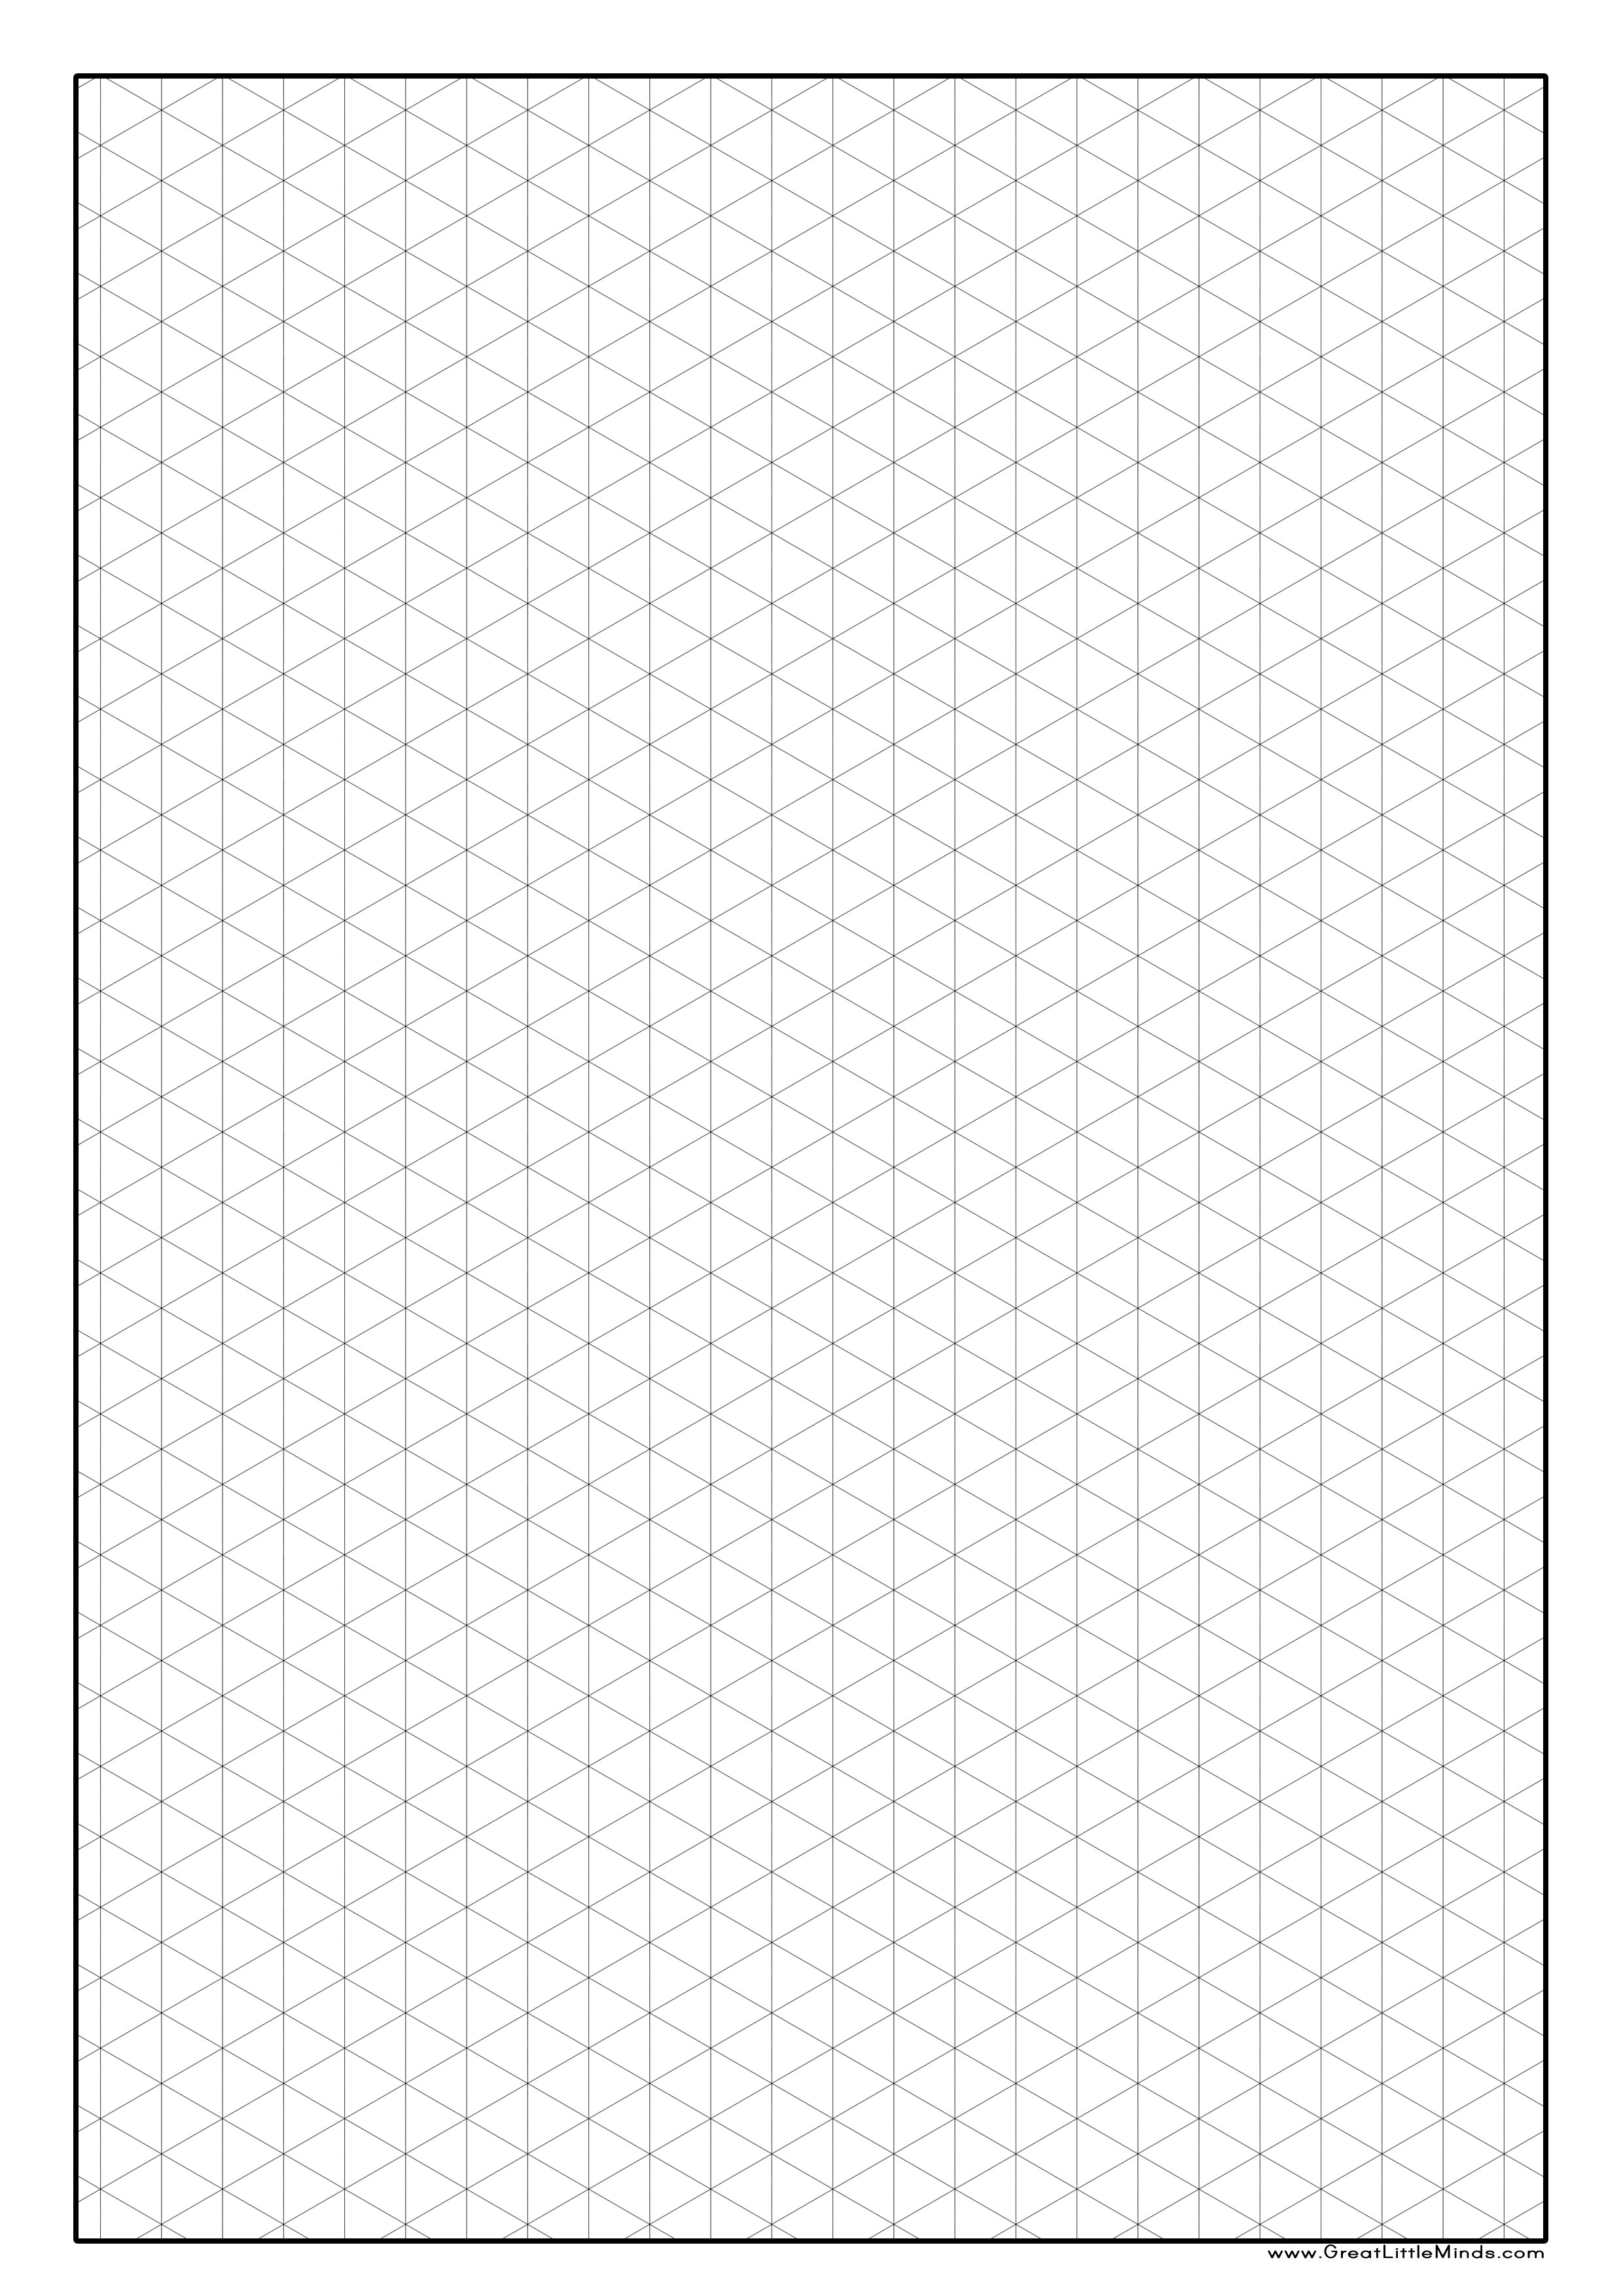 Dotted Math Paper